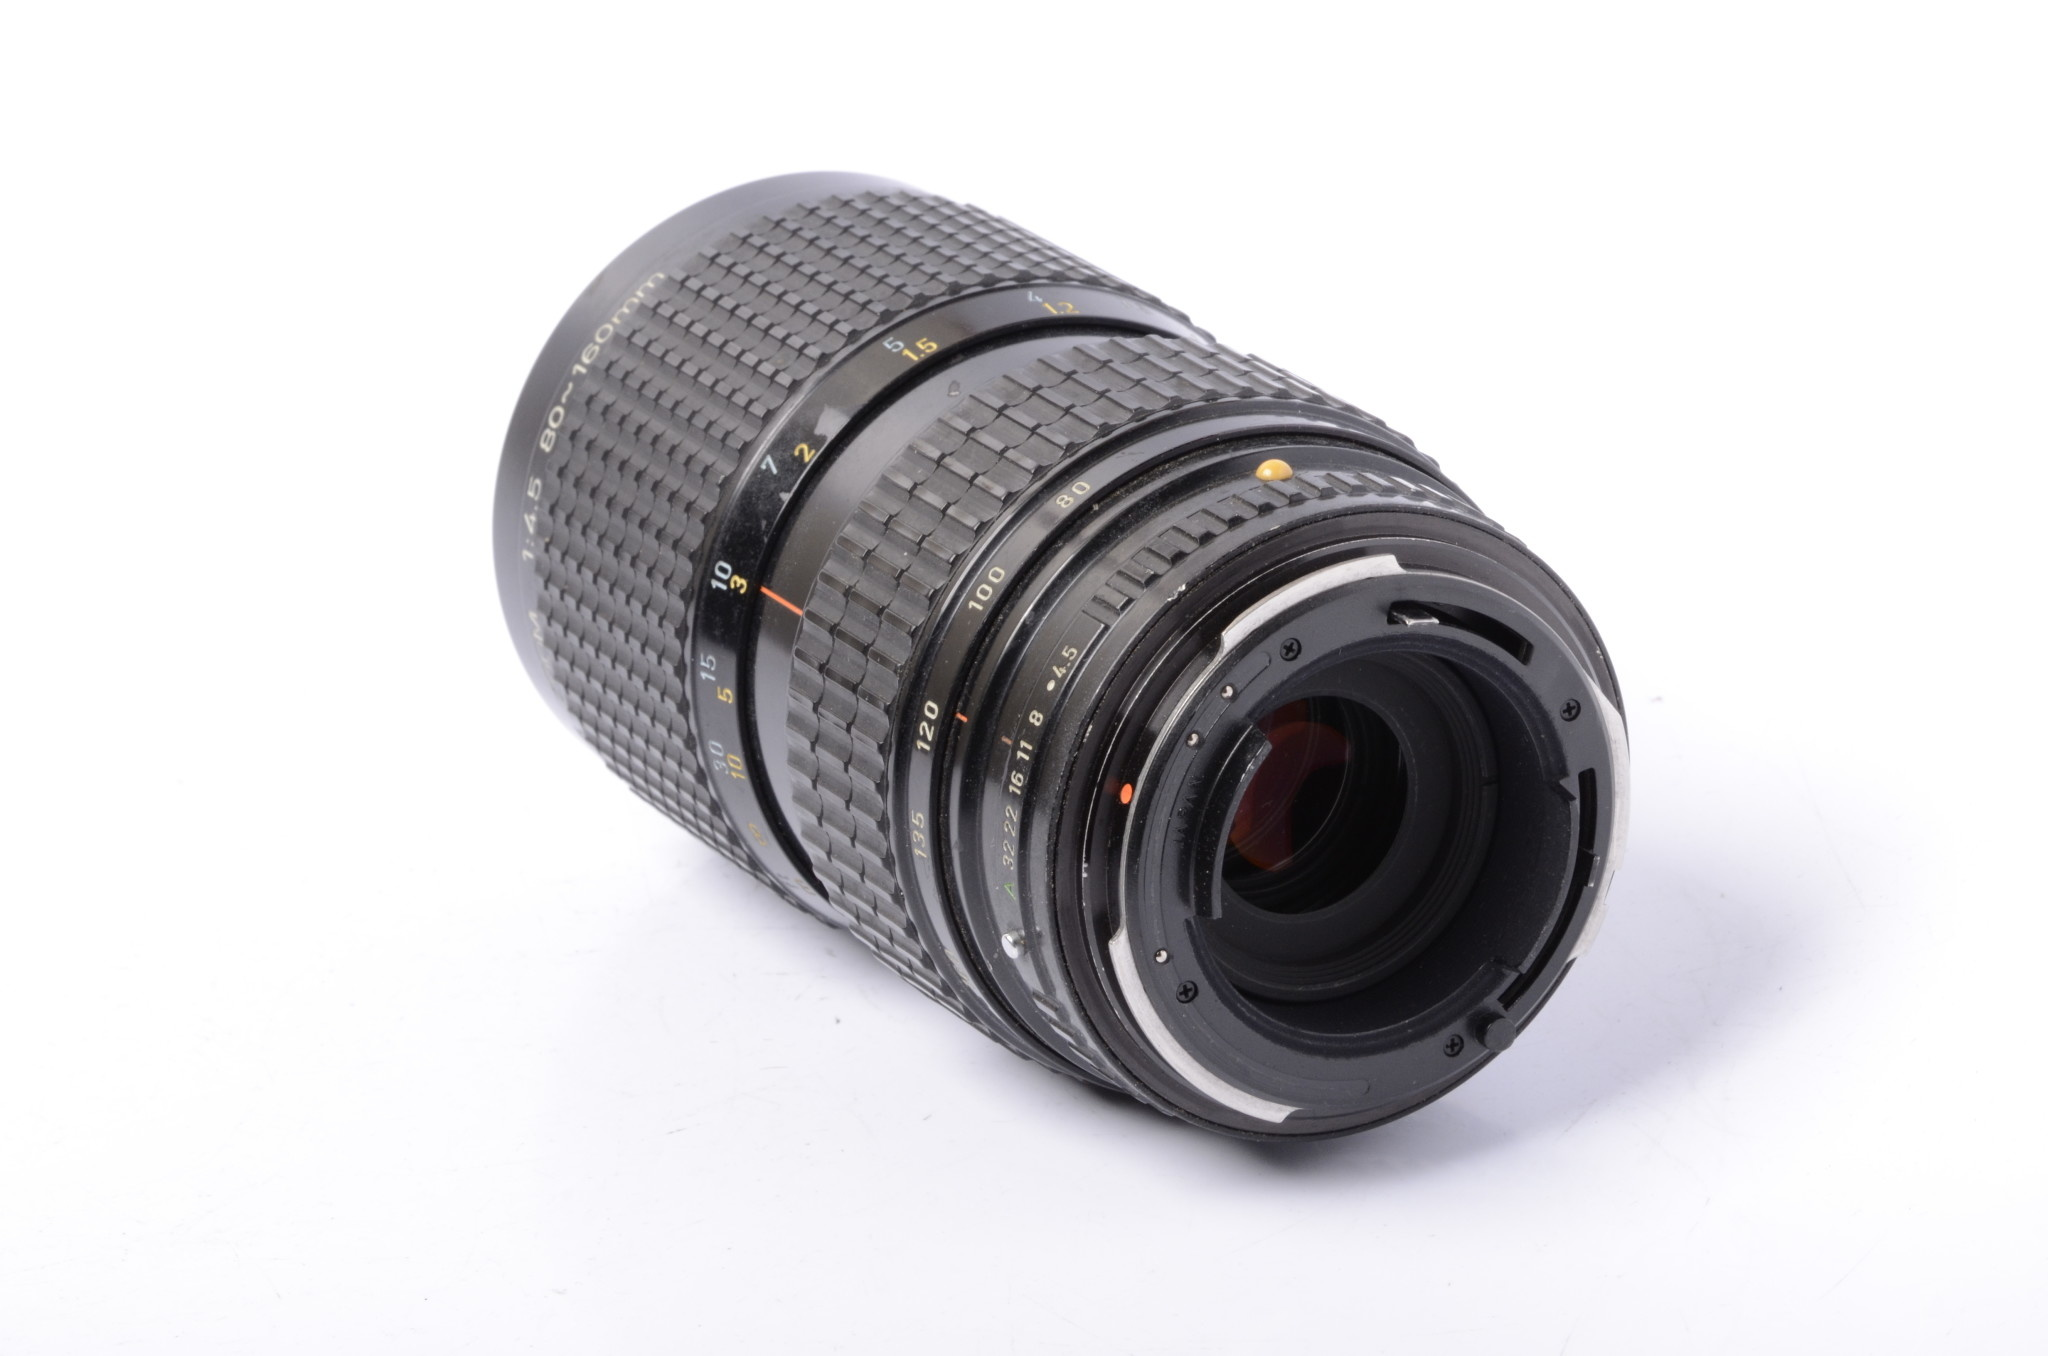 Pentax Pentax 80-150mm F/4.5 Zoom lens for 645